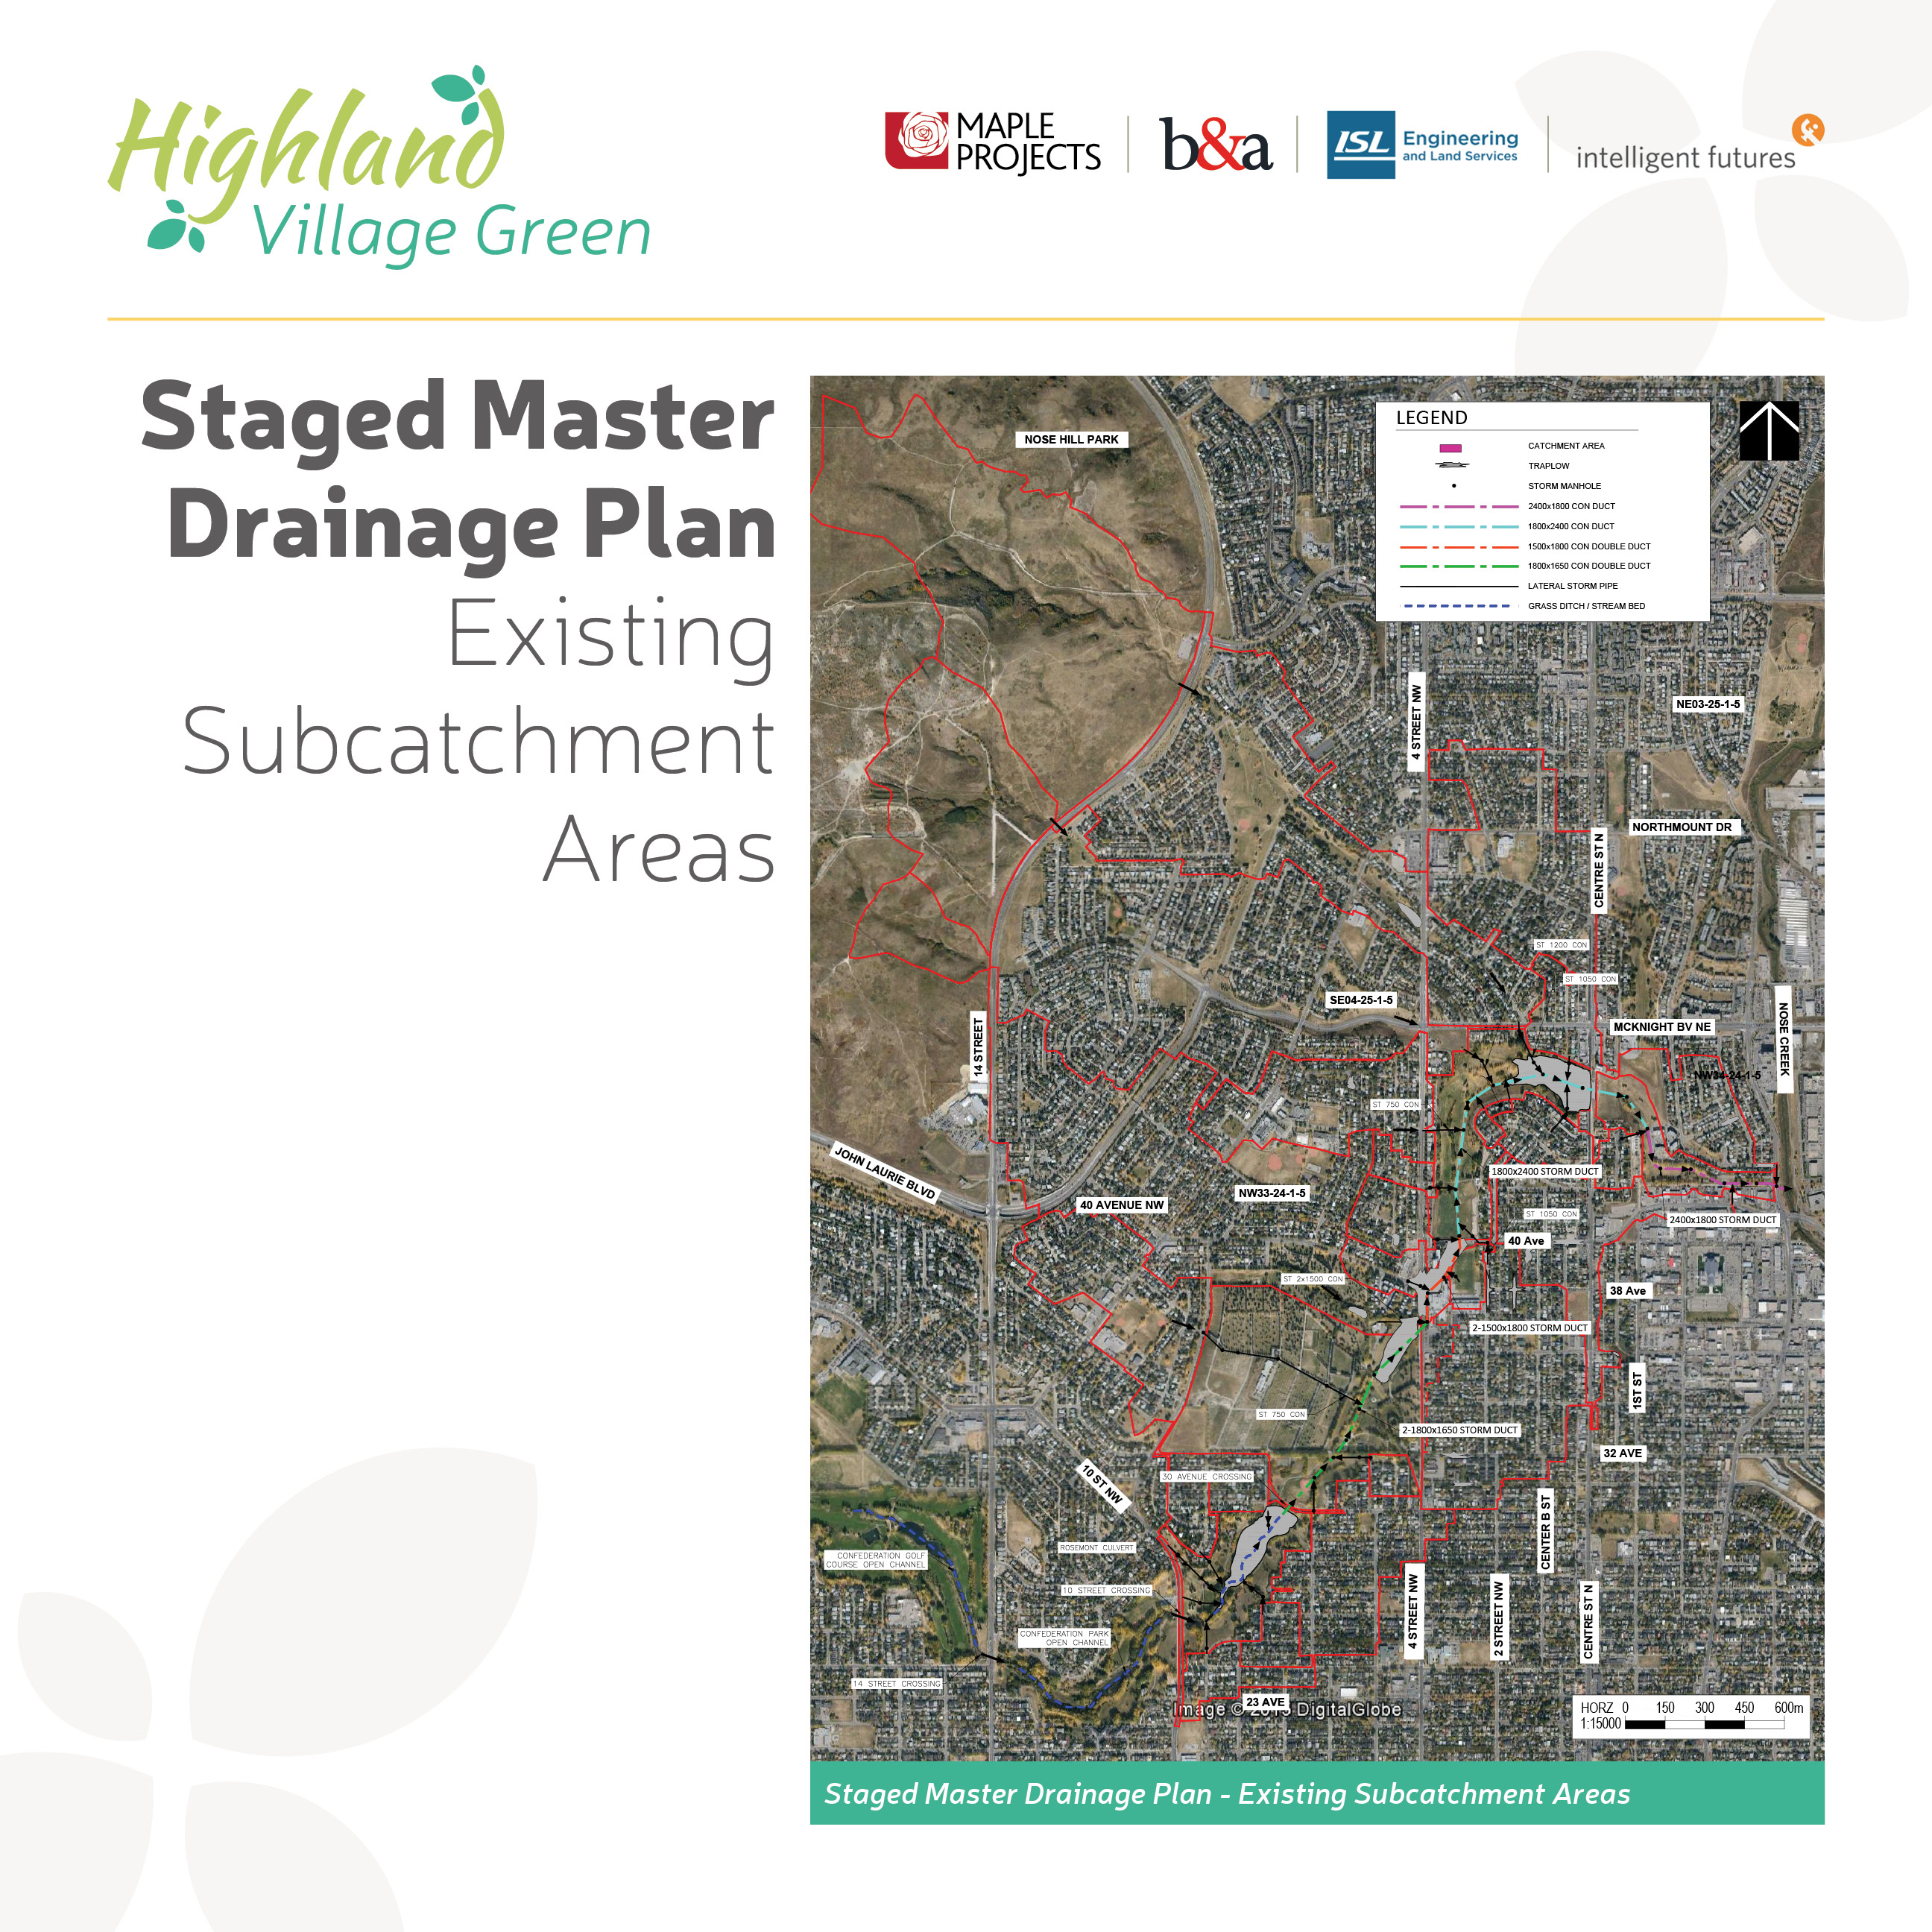 1564 - Highland Village Green - Open House March 2016 - Final Boards8